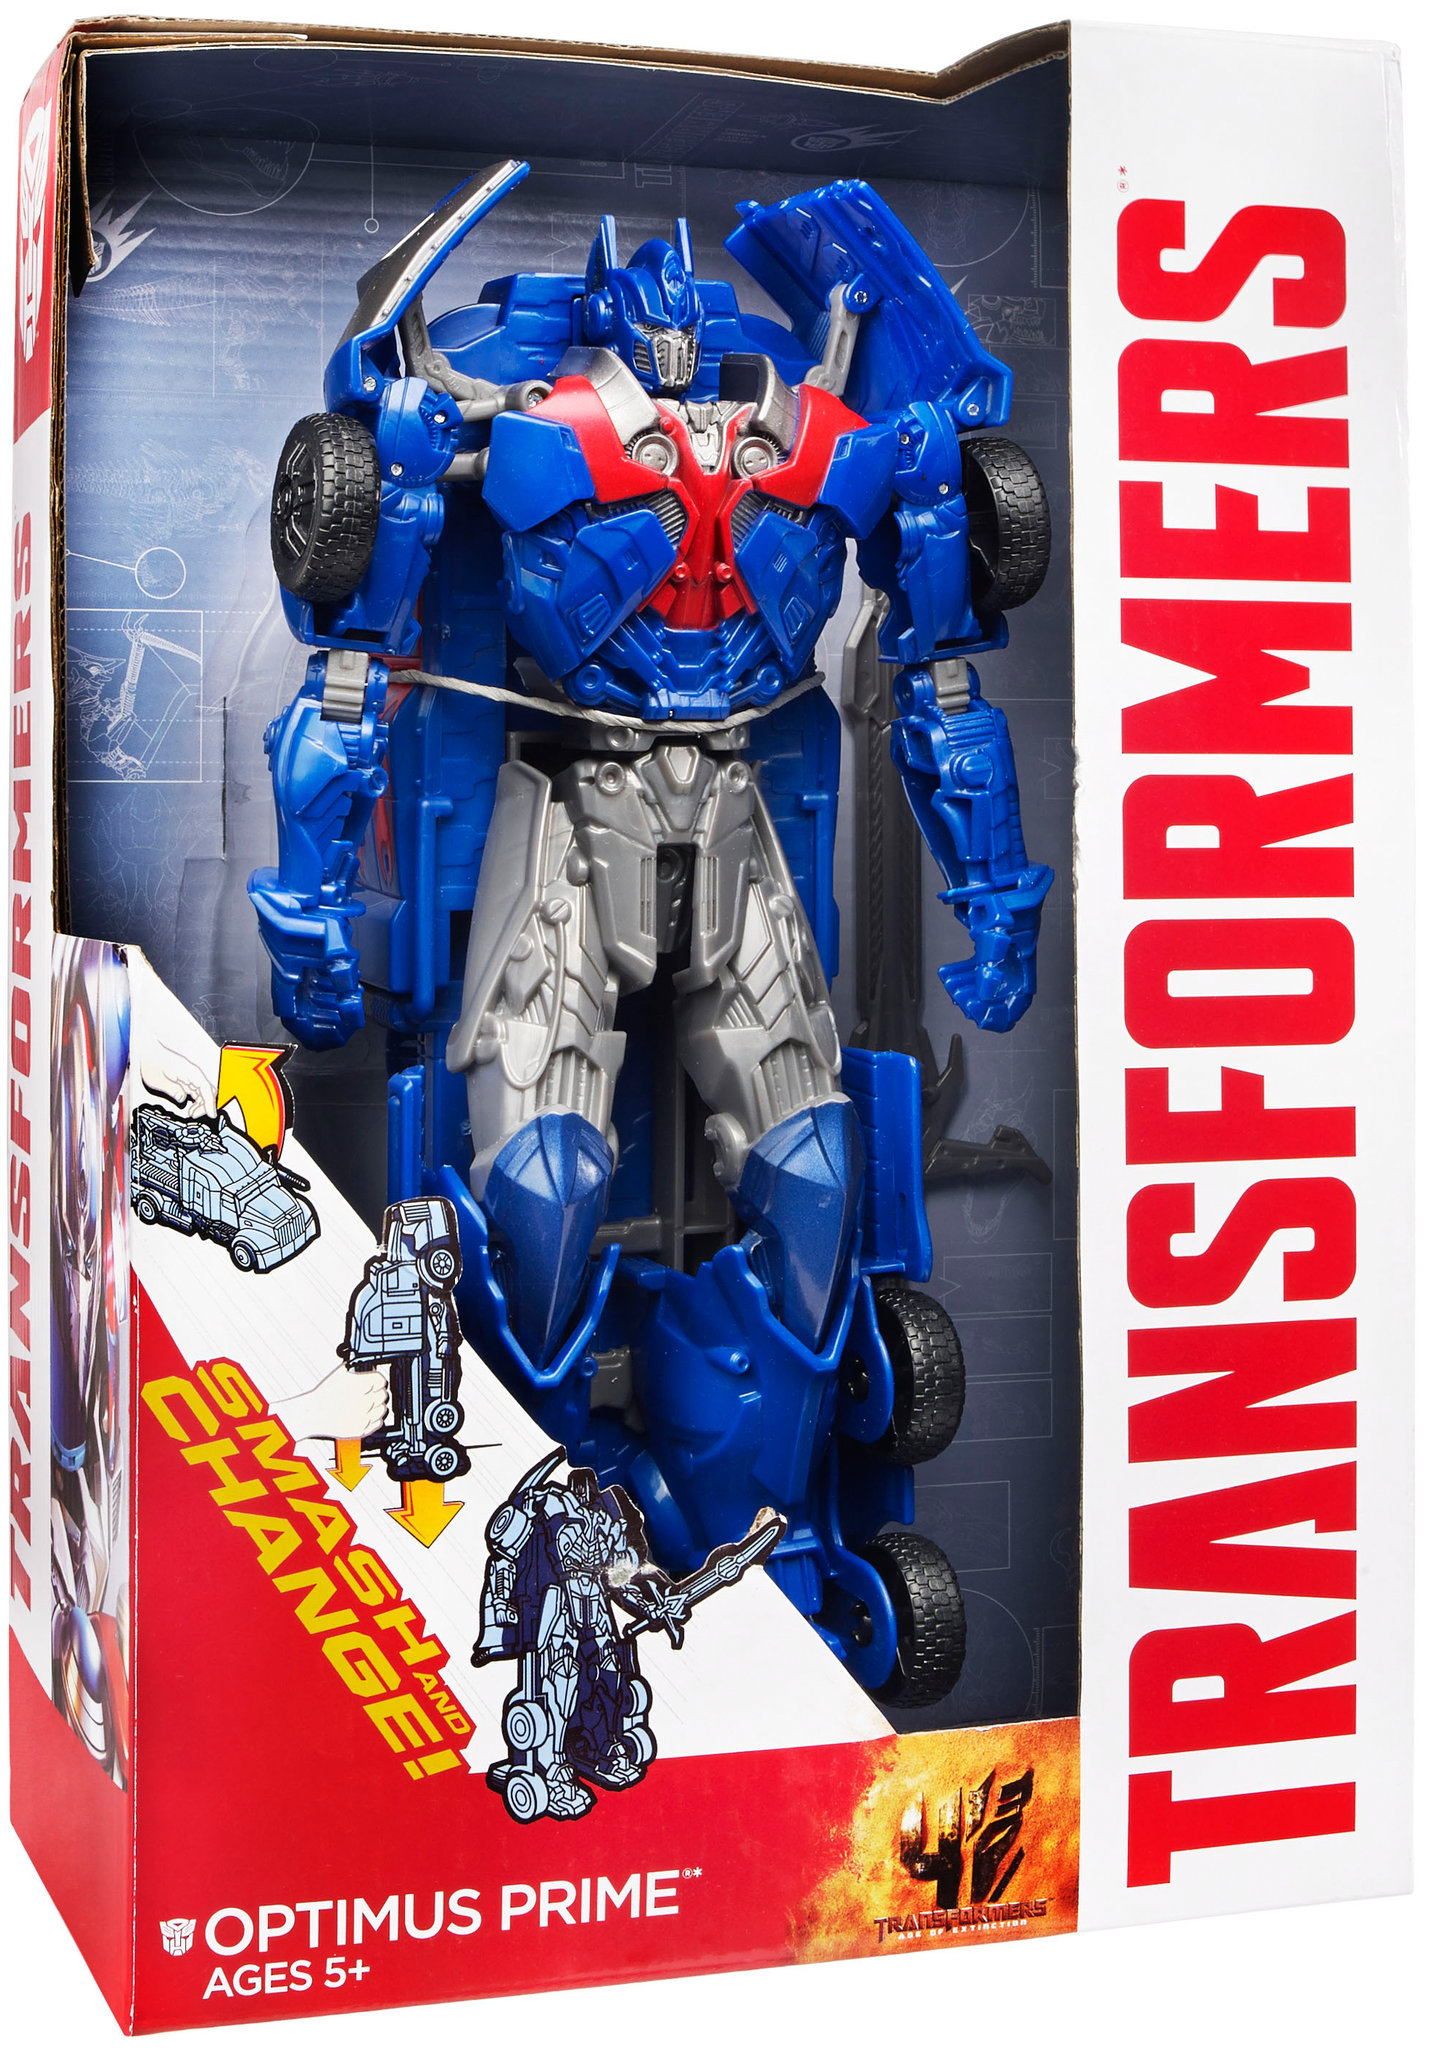 JOUETS - Transformers 4: Age Of Extinction - Page 3 Smash-change-optimus-prime_1390184175